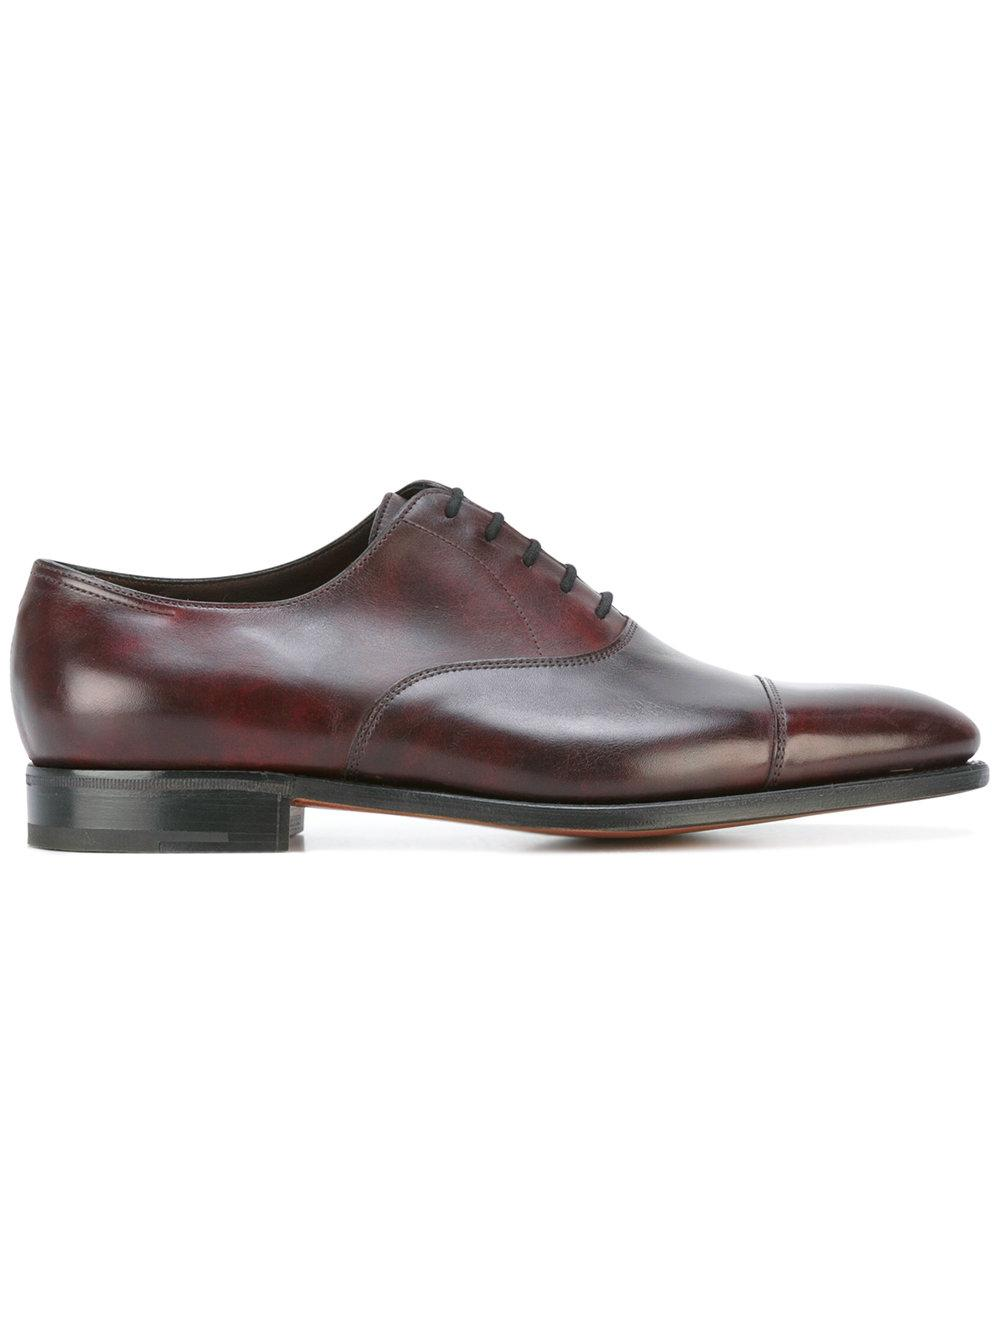 Dark Brown Leather Formal Shoes